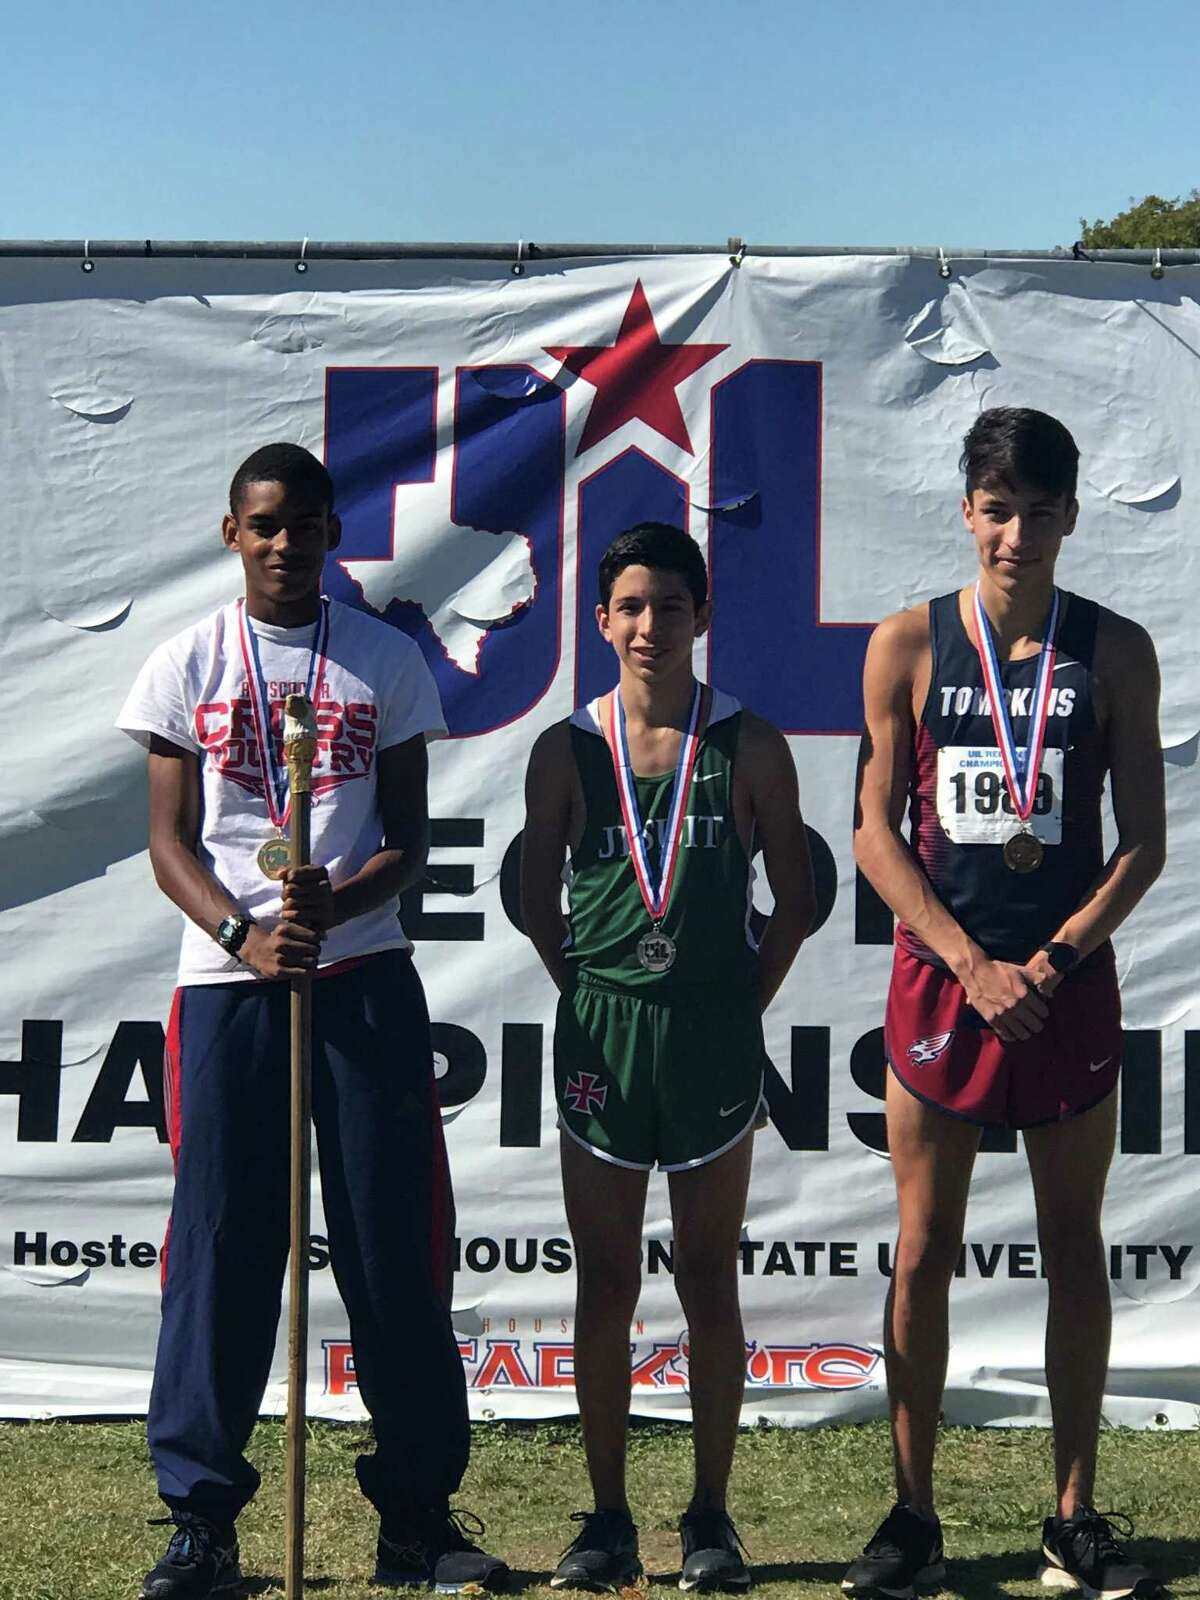 Atascocita senior Worthington Moore (left), freshman Avery Clover (center), and senior Ben Maldinado (right) qualified for the state cross country meet out of the region meet